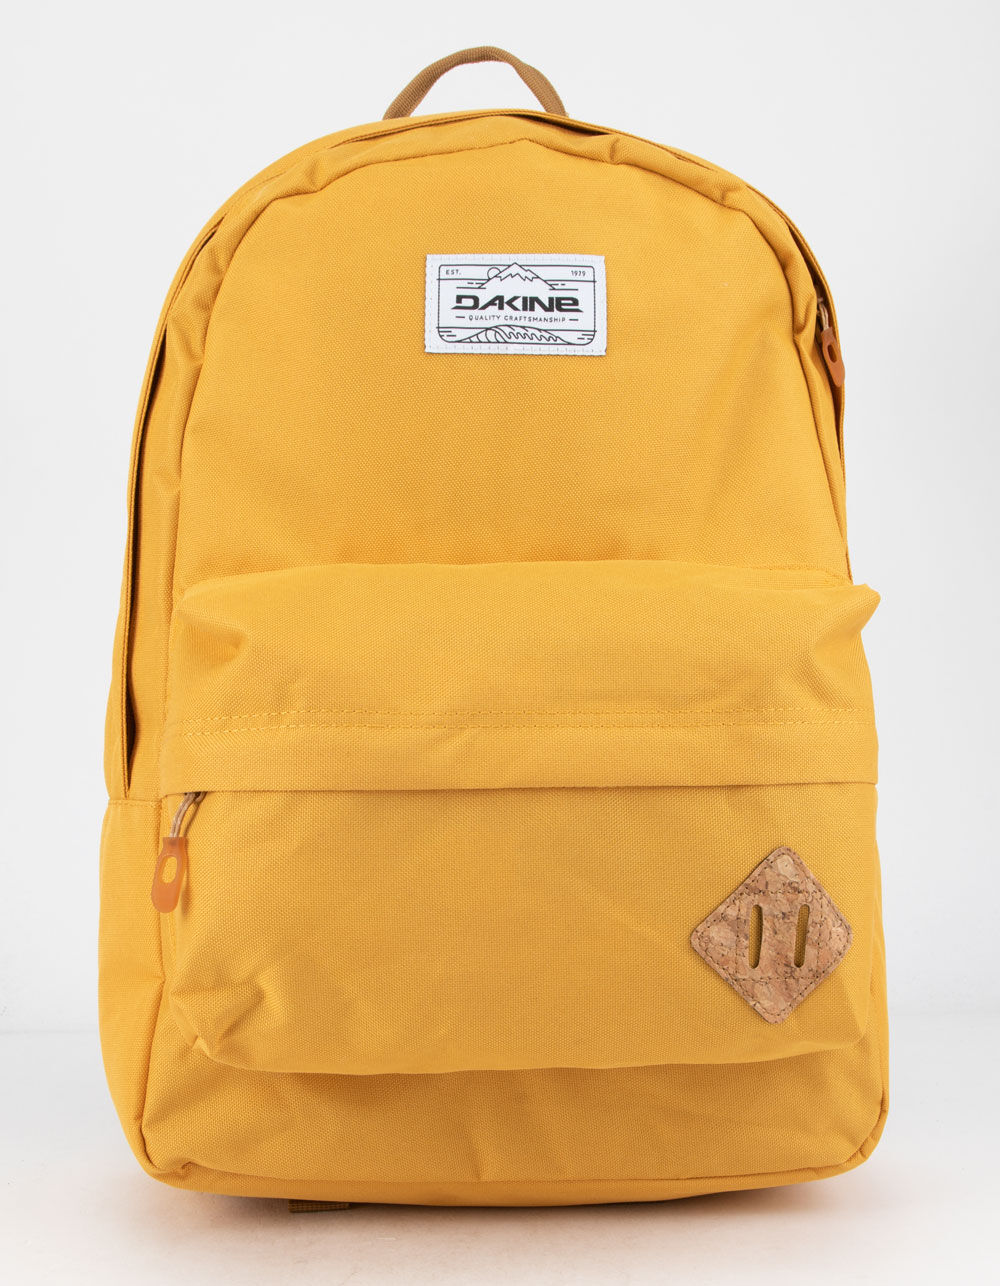 Image of DAKINE 365 PACK 21L YELLOW BACKPACK